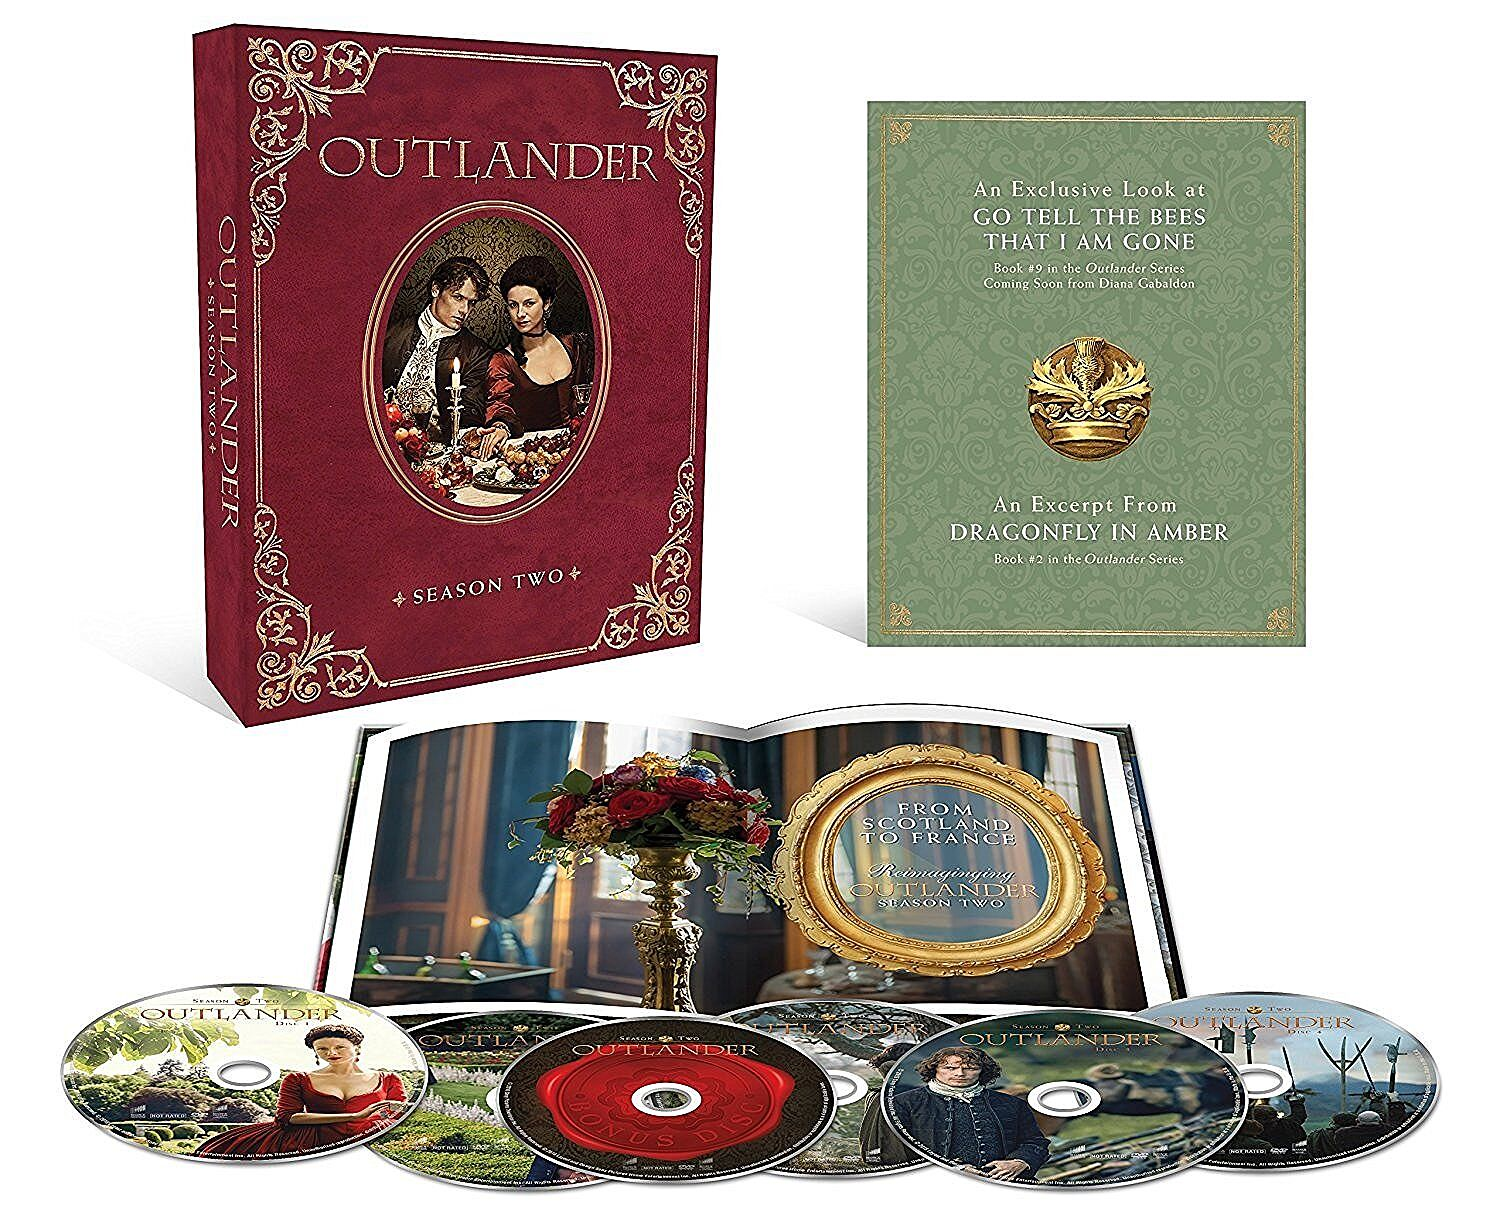 Outlander S2 Collector's Edition DVD/Blu-Ray Has Everything You Want